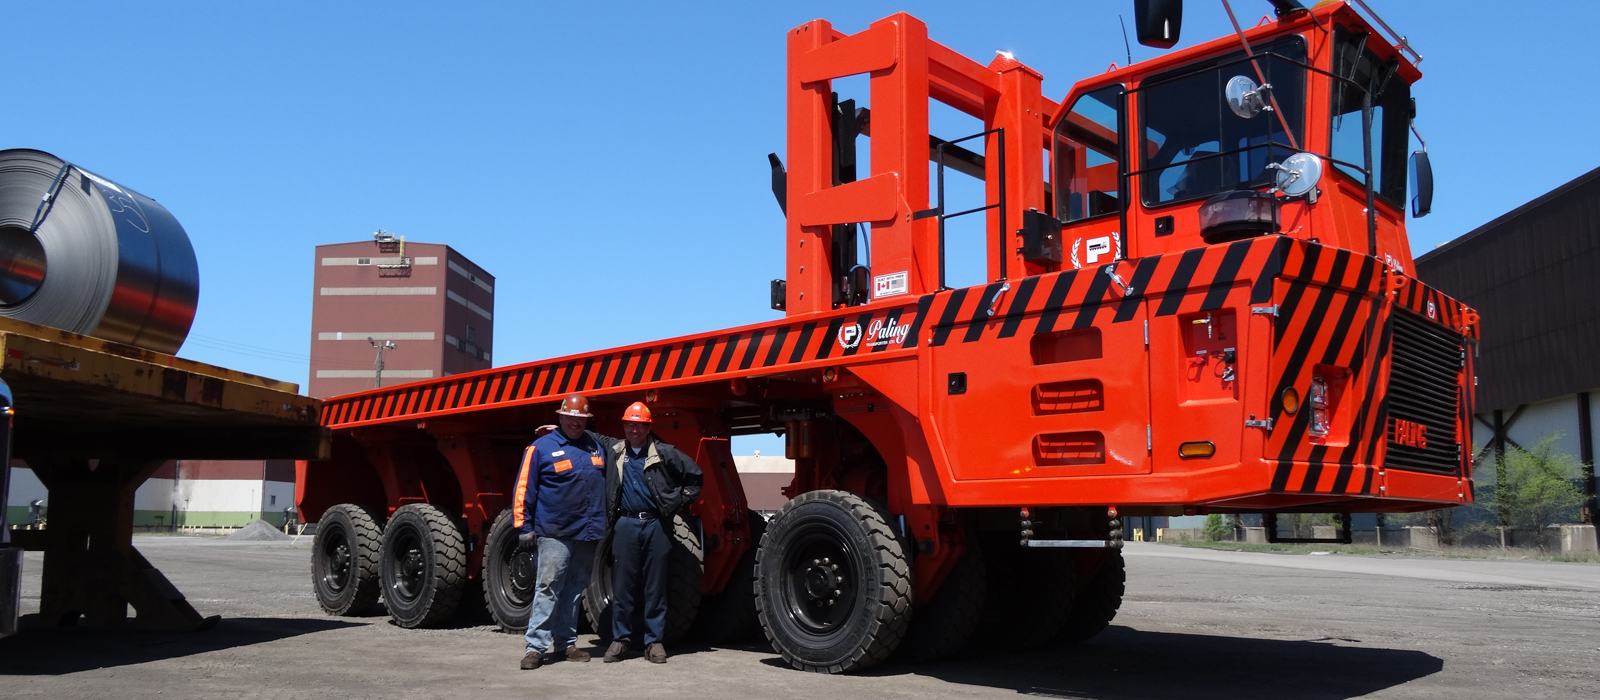 Two Bulk Equipment Corp. Employees Wearing Hard Hats Standing In Front Of A Bright Red Transporter